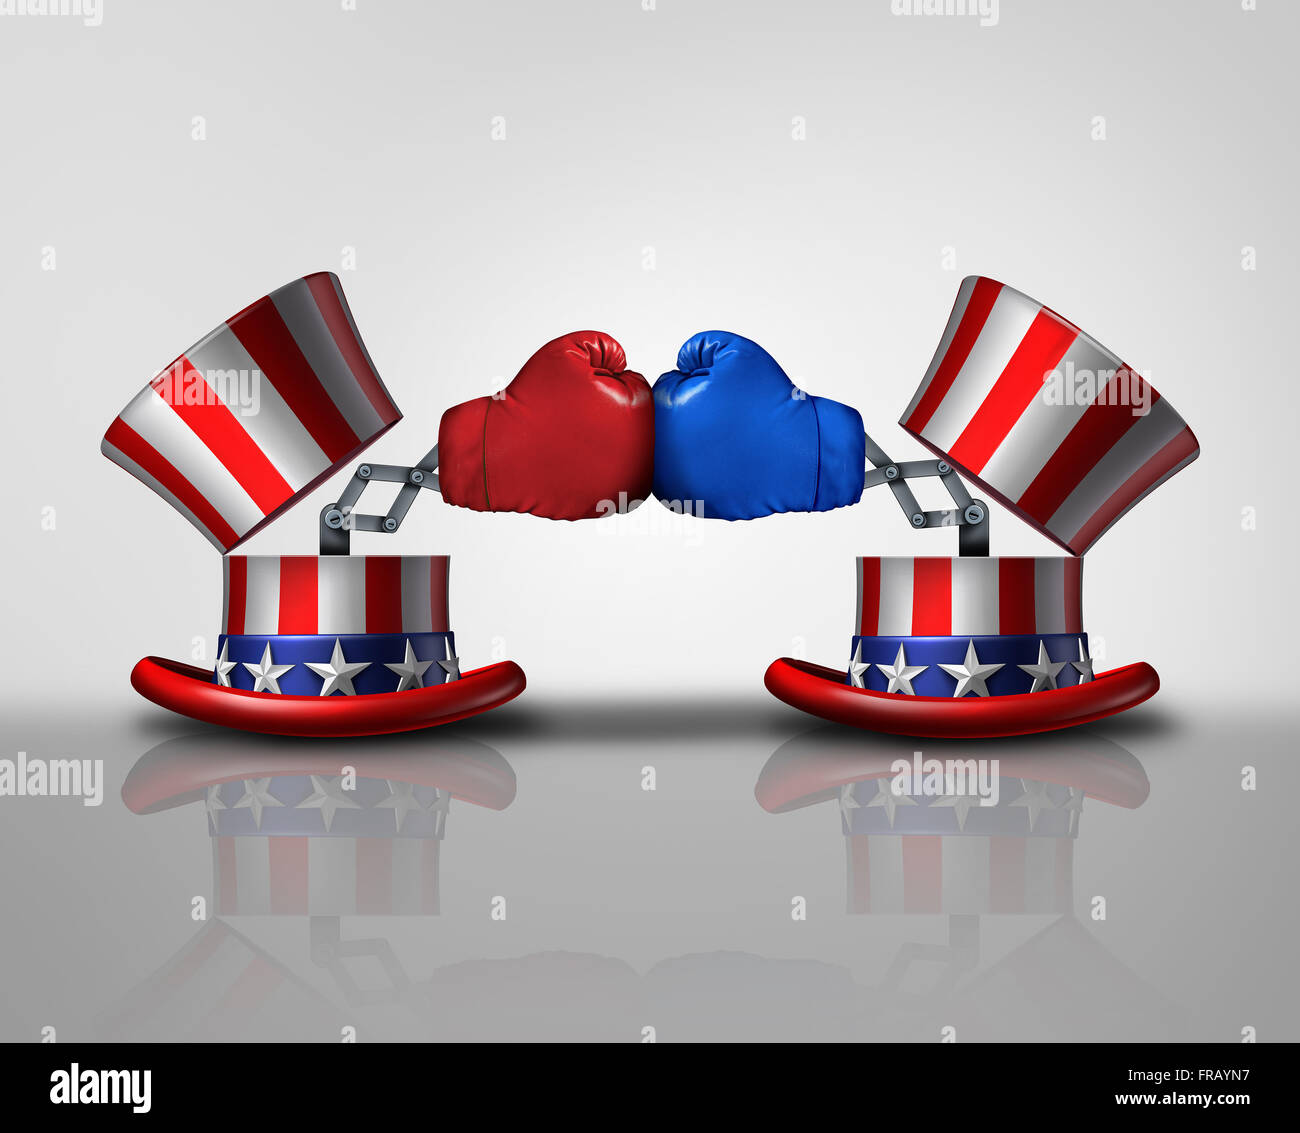 American election fight and political violence concept for campaigning for votes as an open uncle Sam top hat decorated - Stock Image